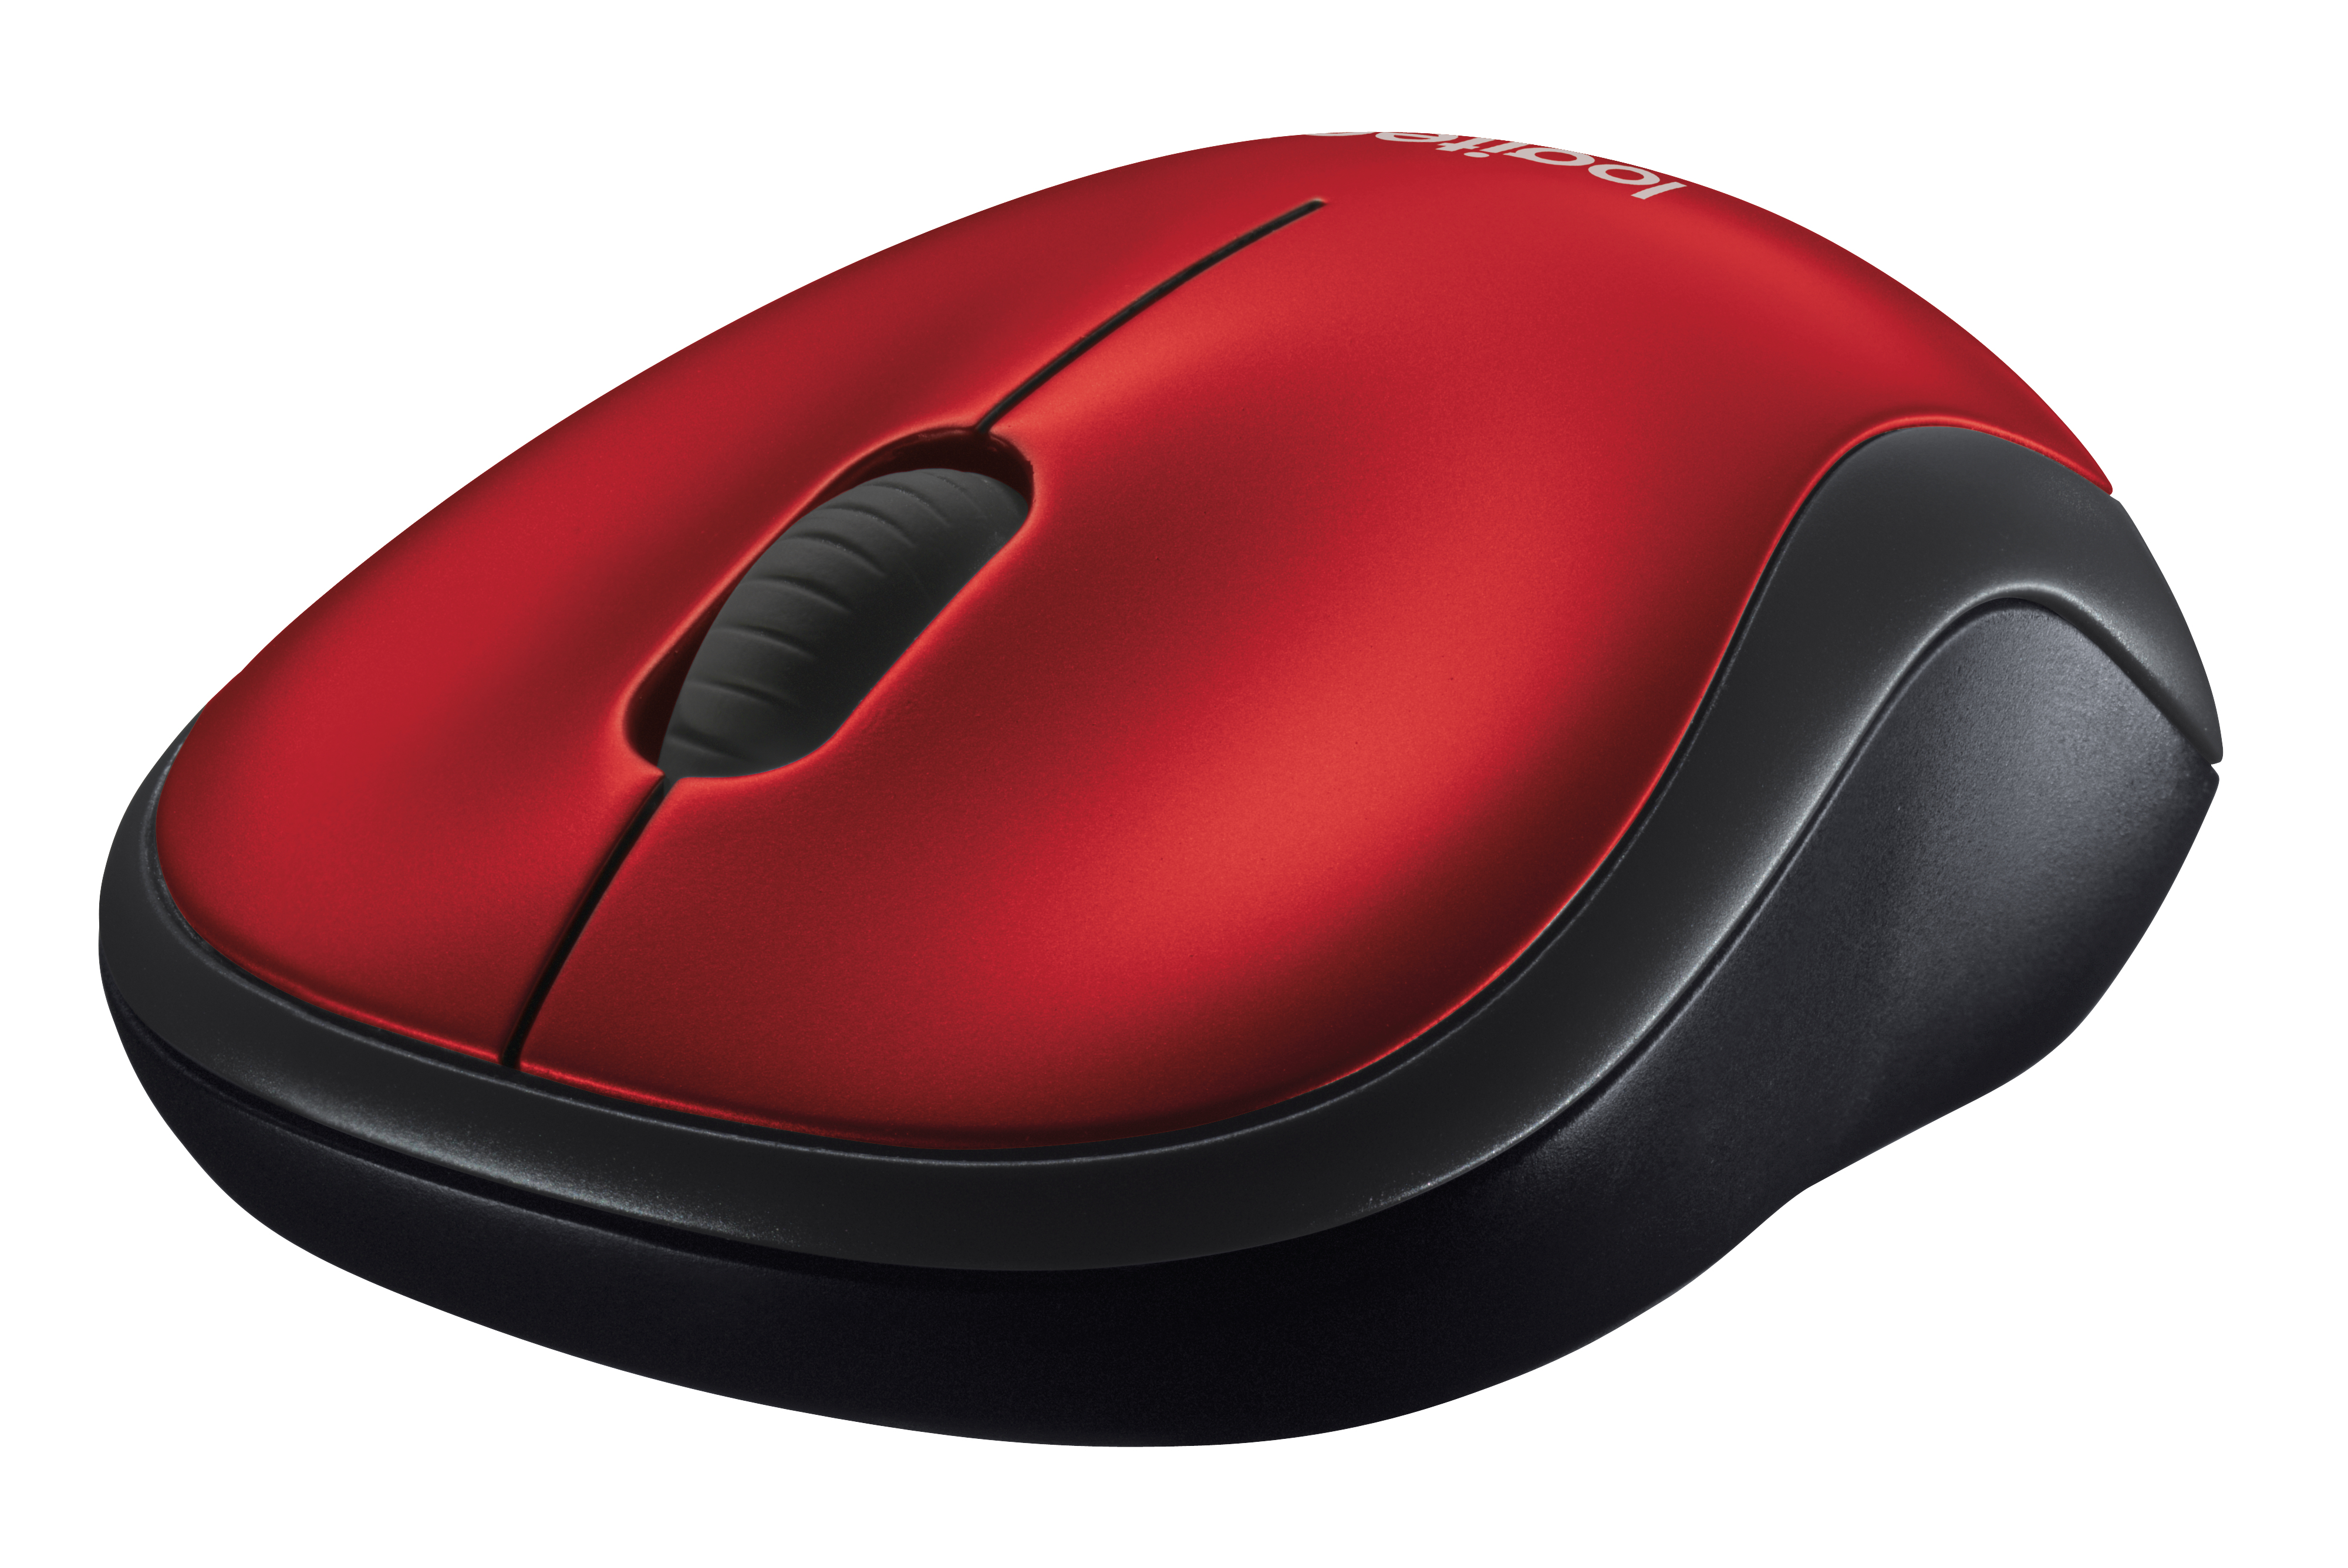 MOUSE LOGITECH M185 W/L USB 2.0 RED